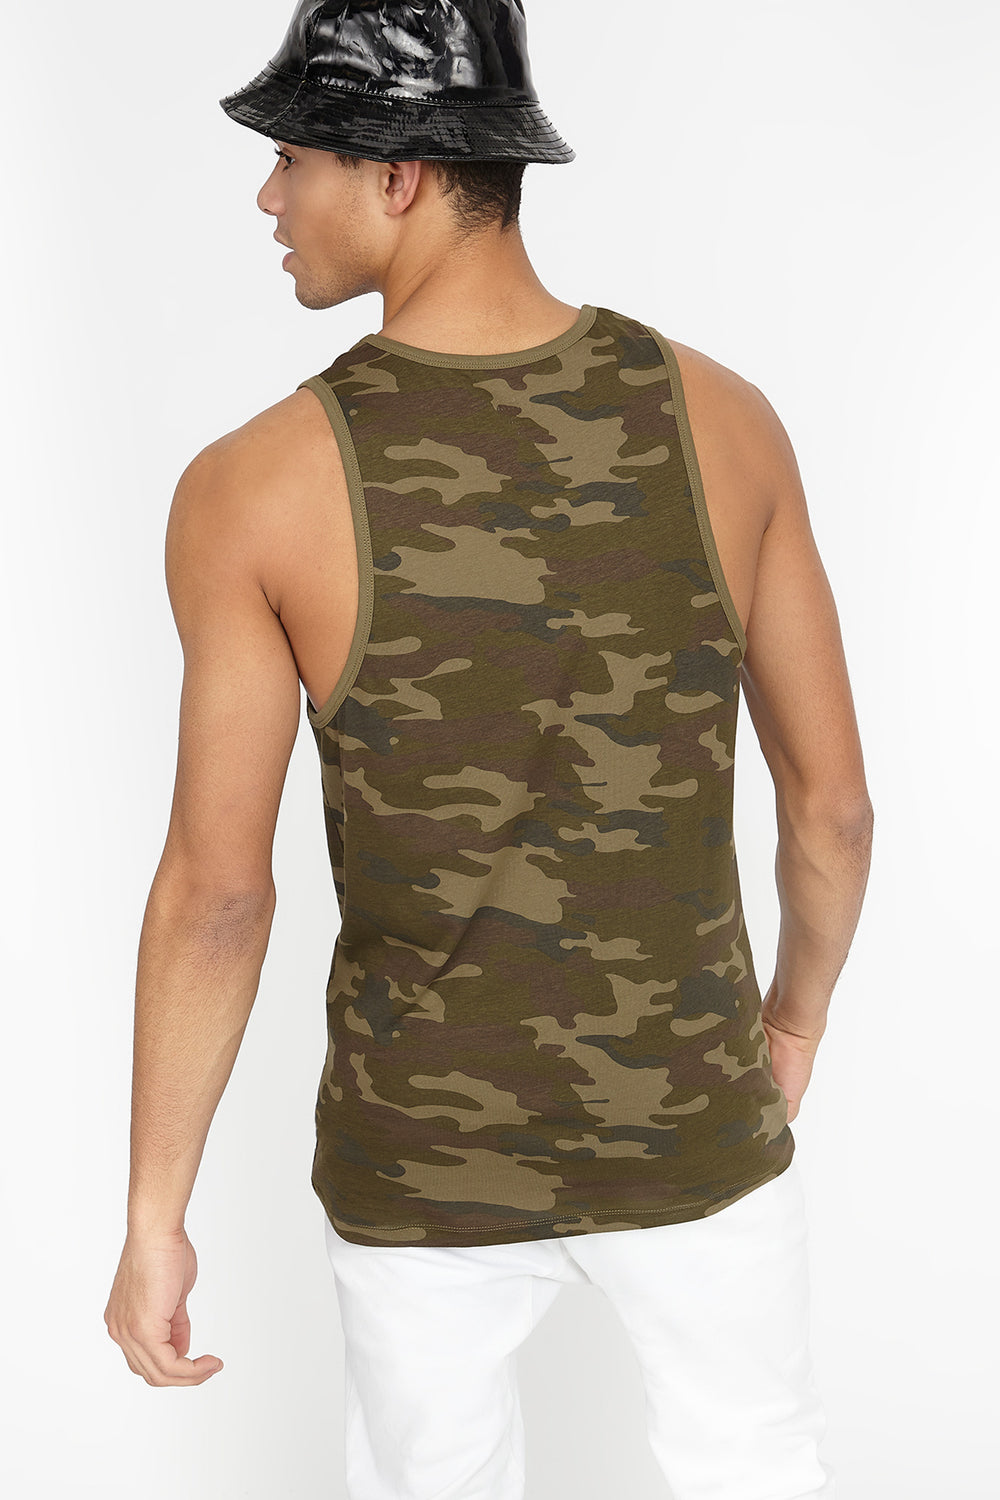 Camo 100 Graphic Tank Camouflage